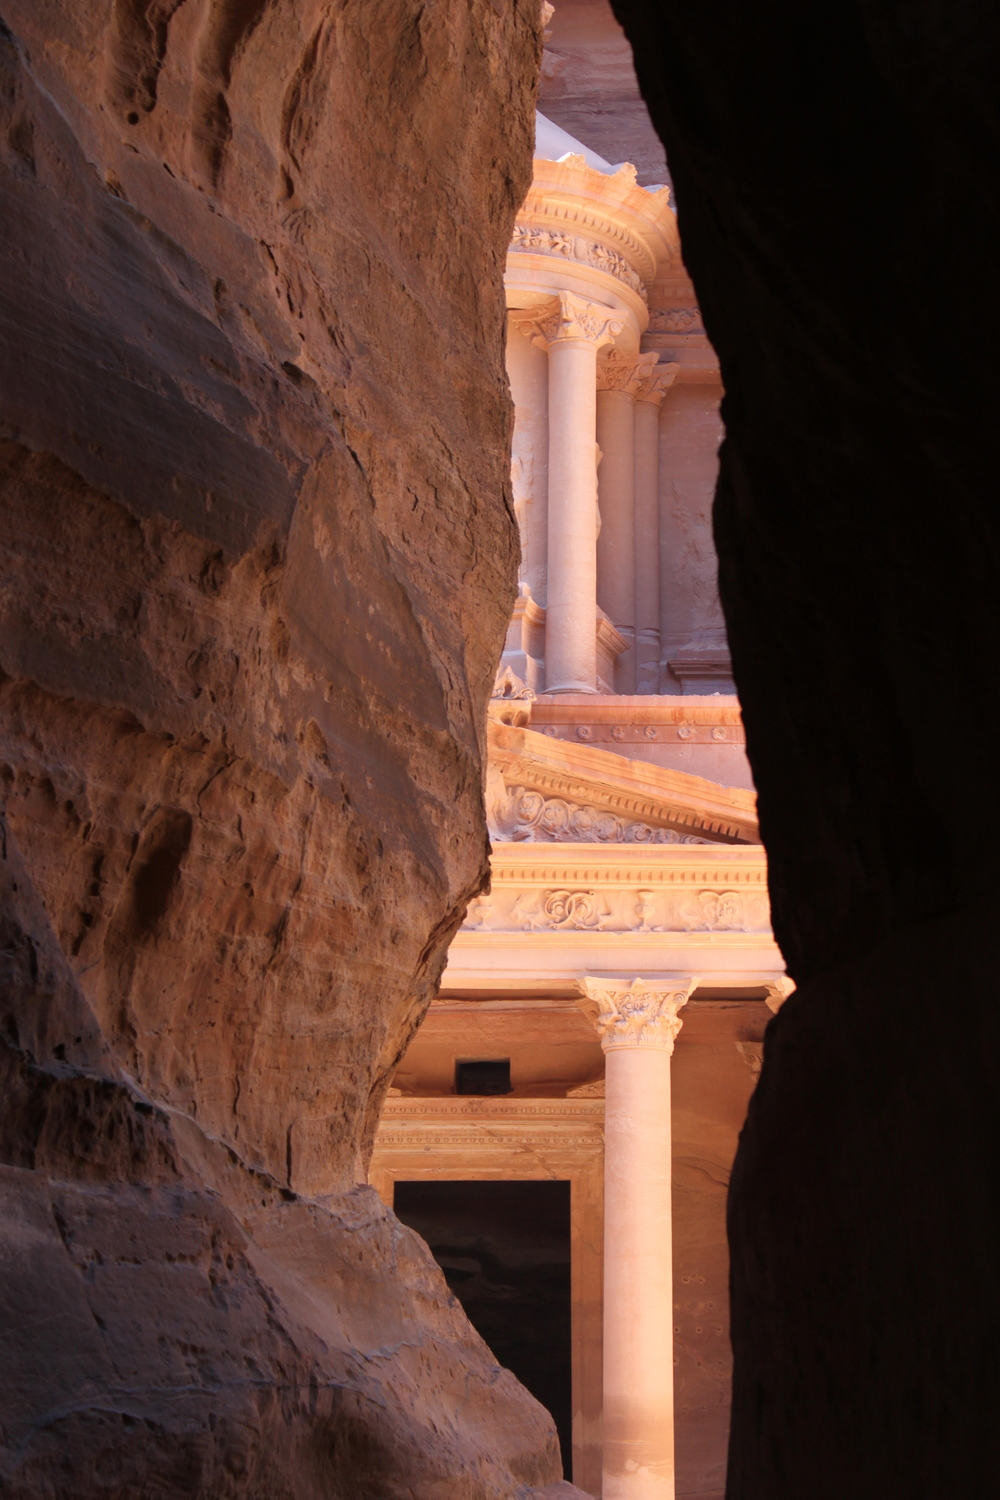 The Treasury reveals herself at the end of the Siq,the entrance to the ancient city ofPetra, Jordan.